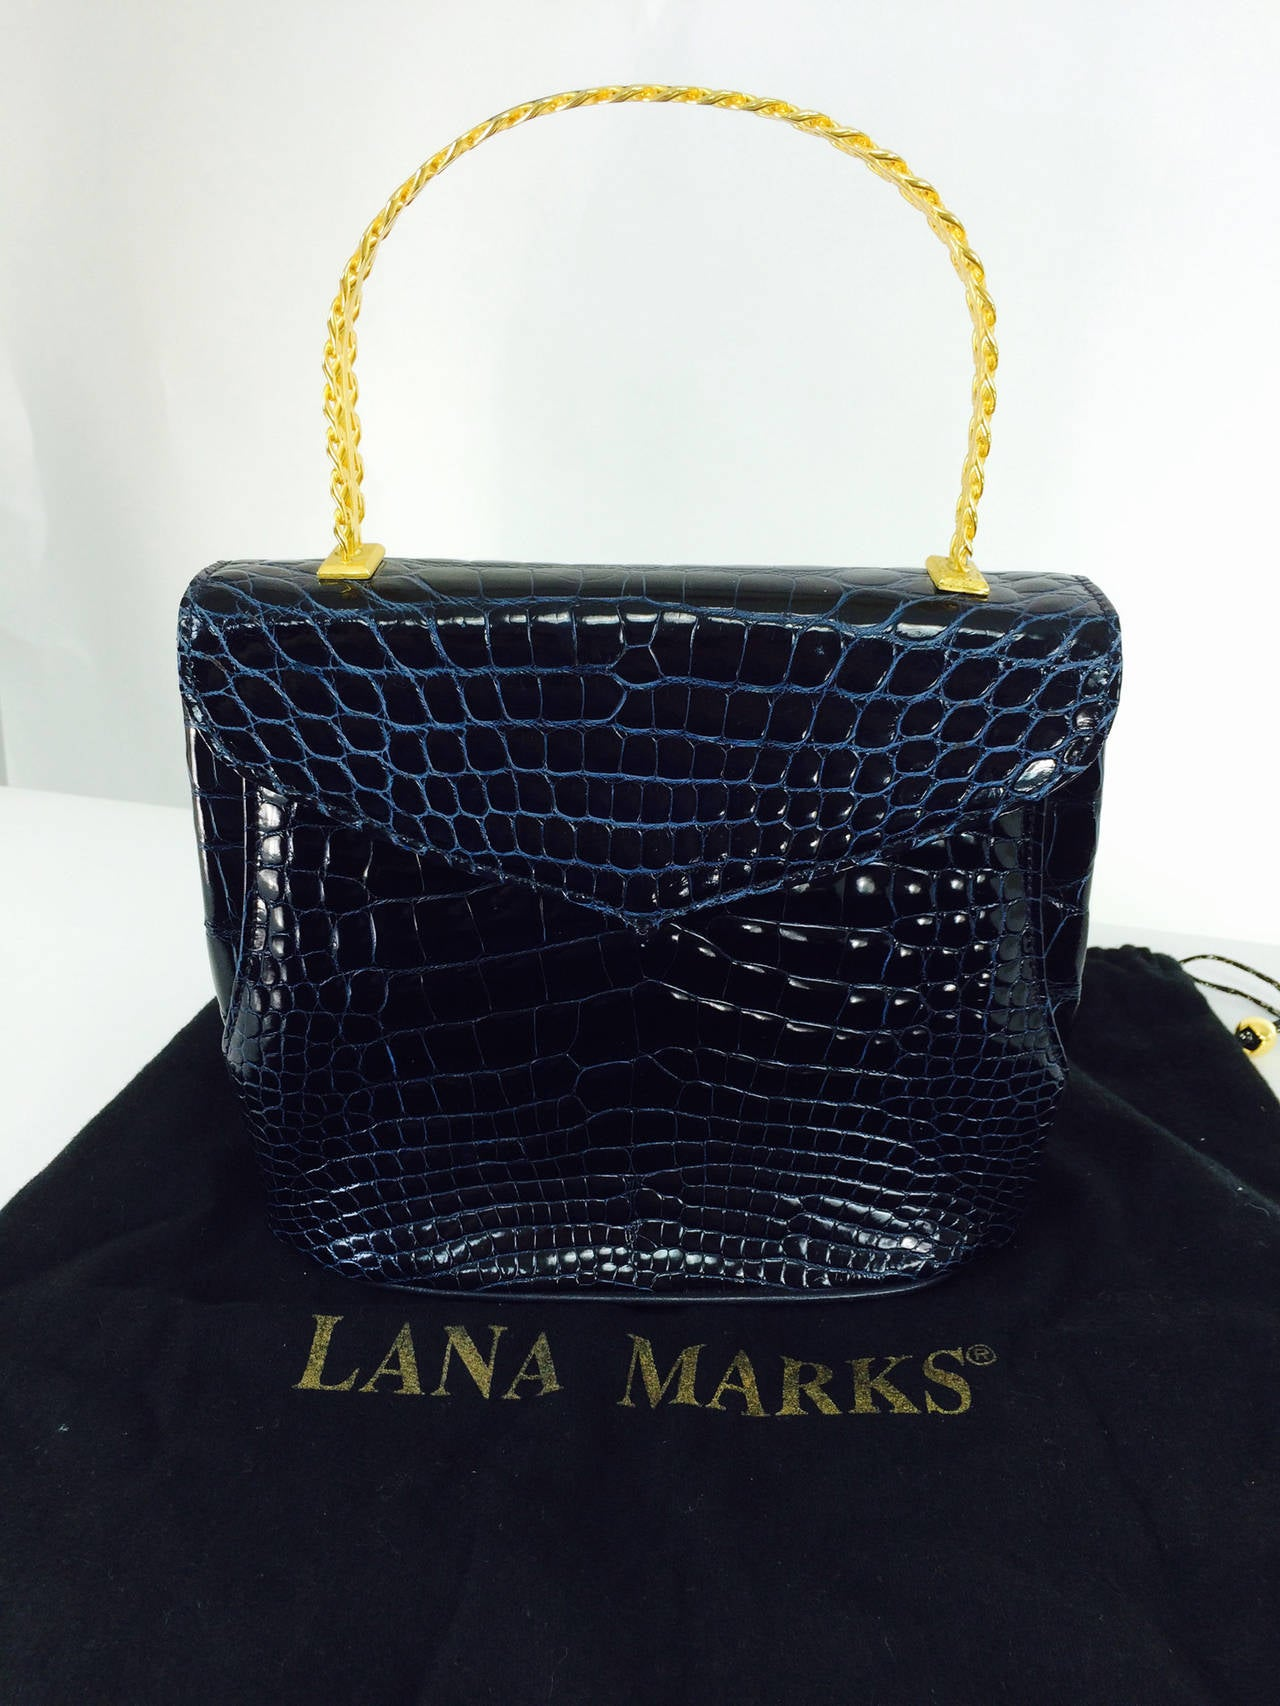 Lana Marks Lana of London navy blue glazed alligator handbag 1980s For Sale 5